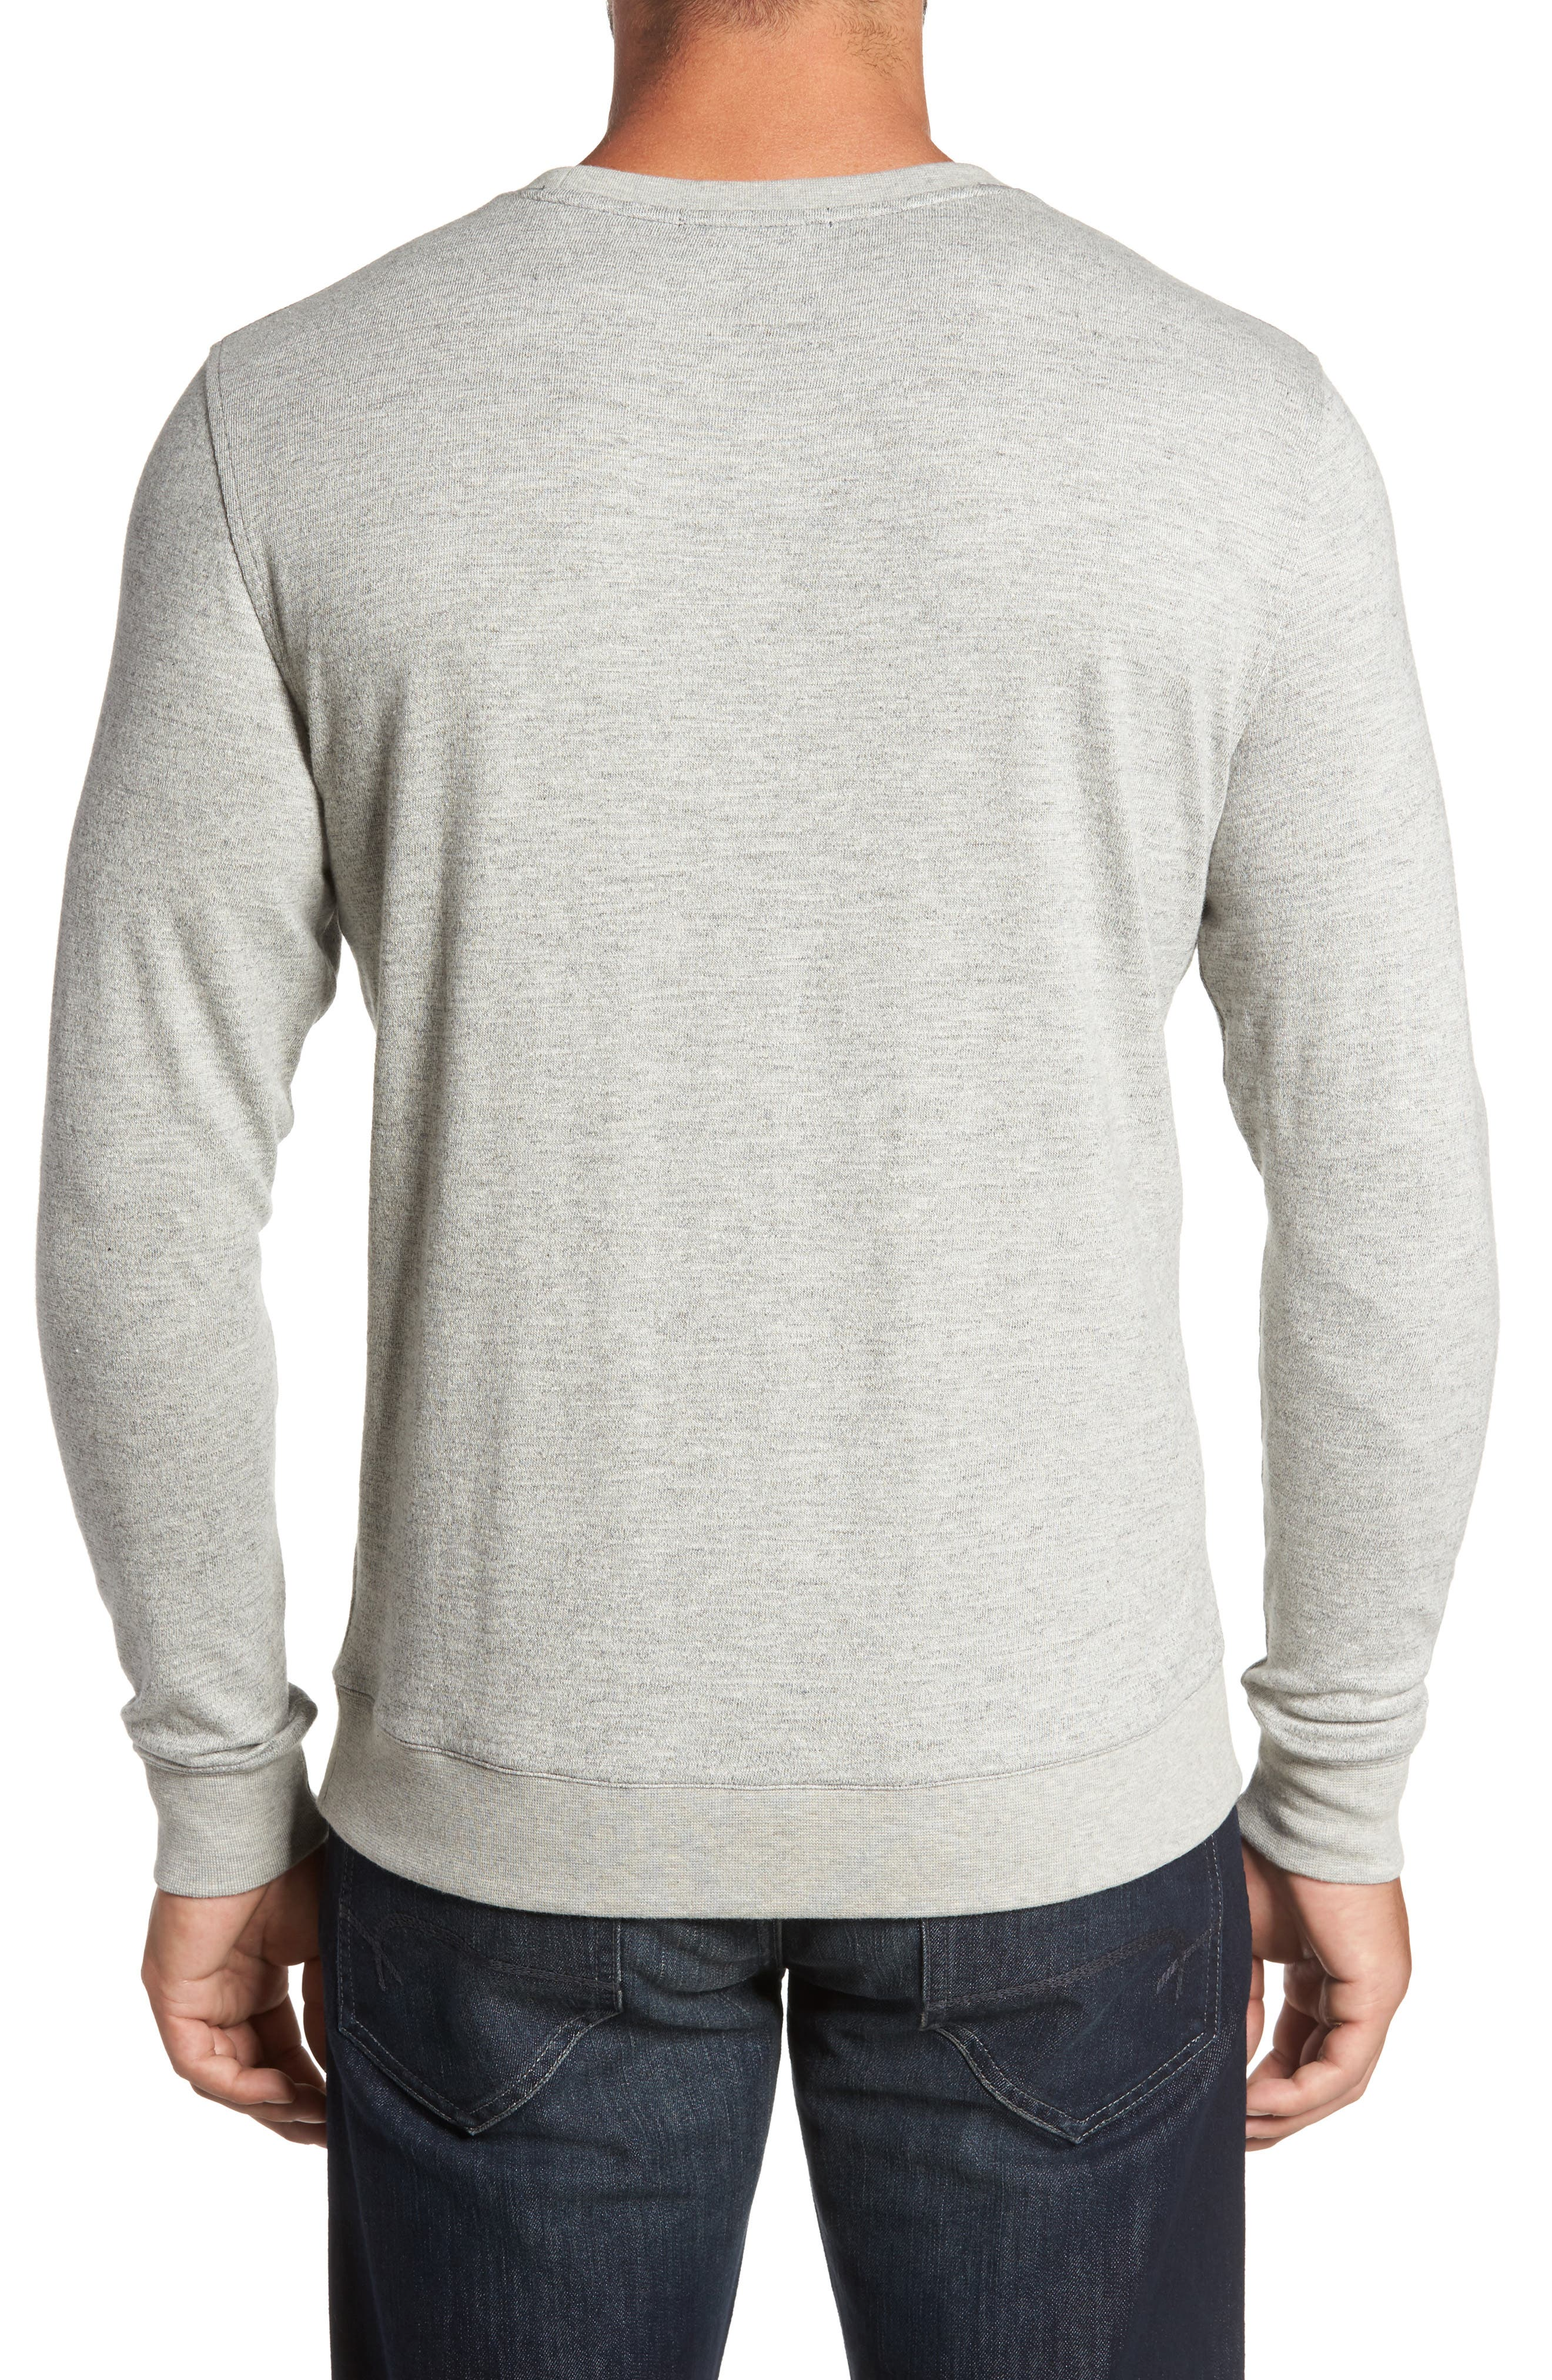 Vienna French Terry T-Shirt,                             Alternate thumbnail 2, color,                             Light Grey